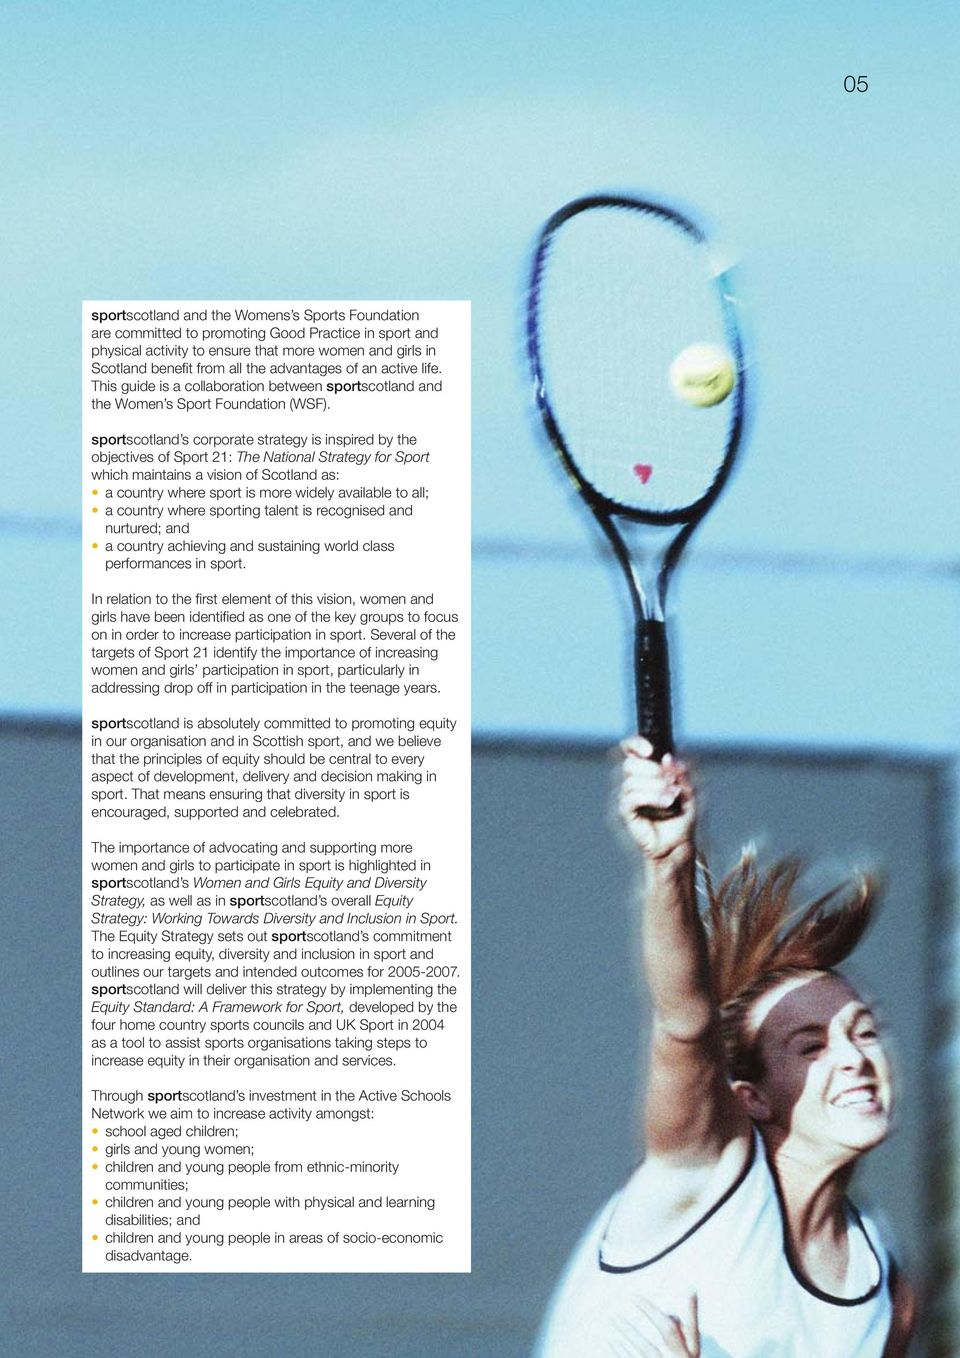 sportscotland s corporate strategy is inspired by the objectives of Sport 21: The National Strategy for Sport which maintains a vision of Scotland as: a country where sport is more widely available